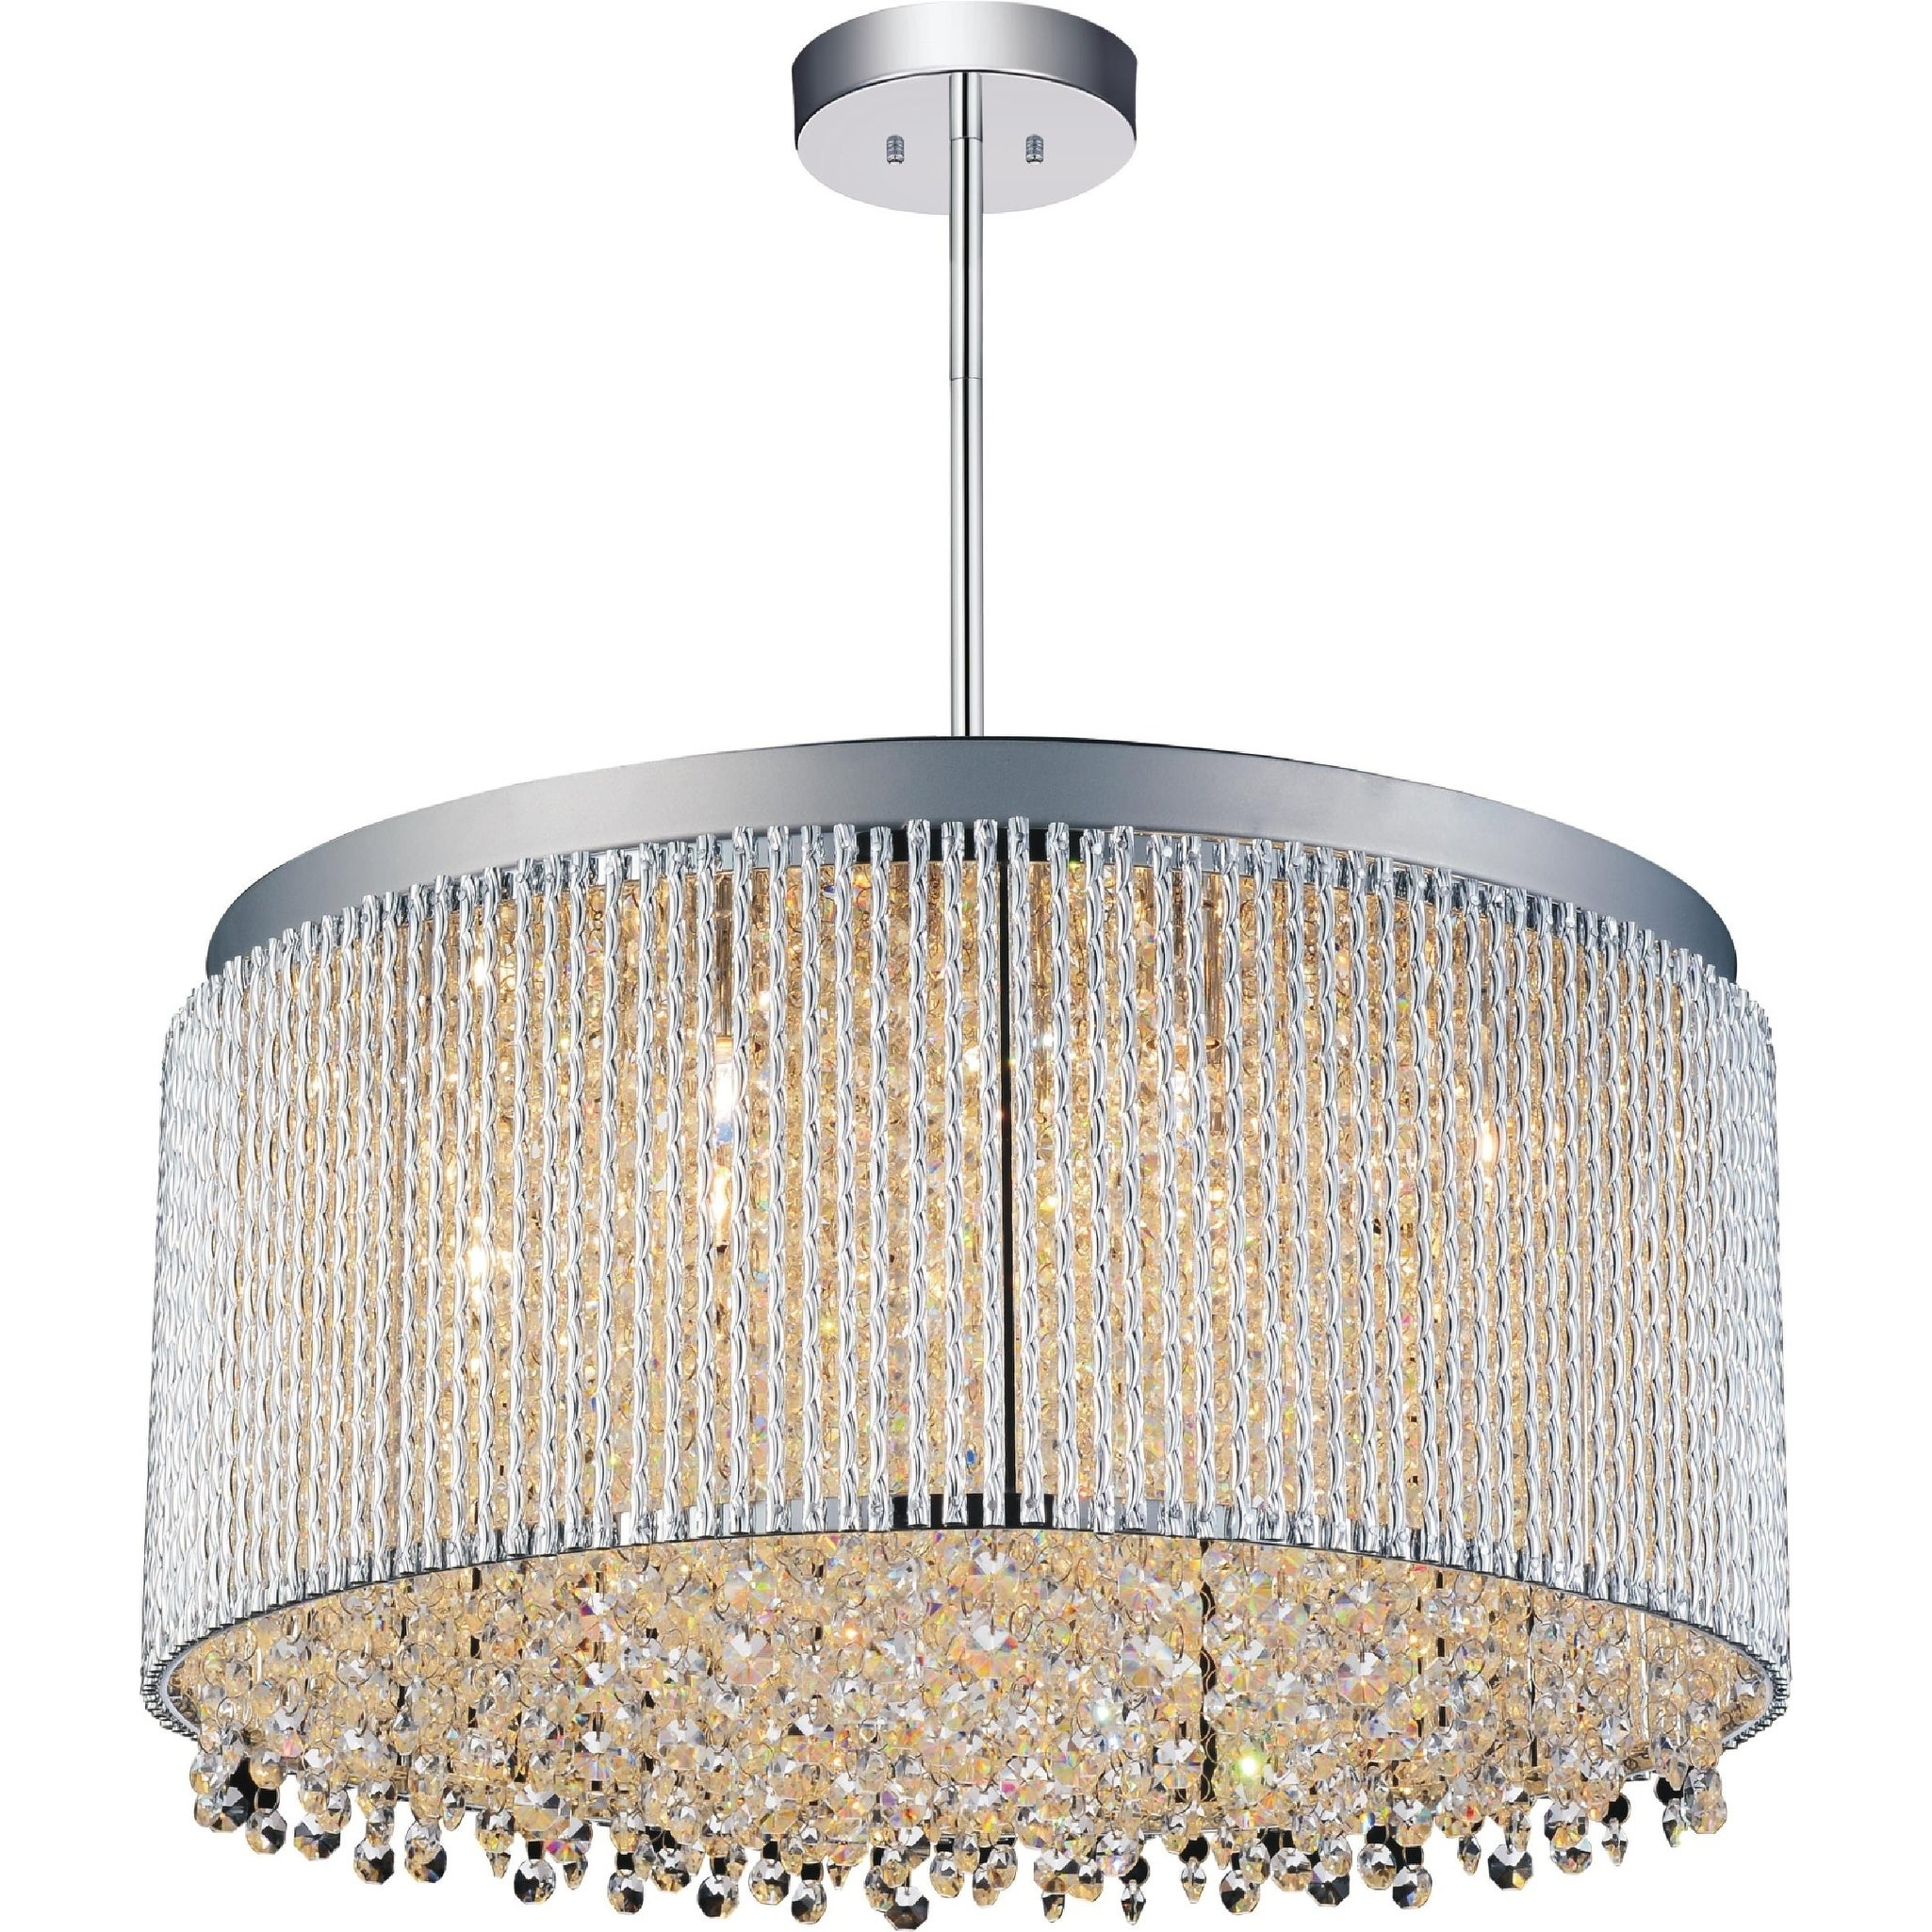 Shop Black Friday Deals On Silver Orchid Bowen 12 Light Drum Shade Crystal Chandelier Overstock 22859707